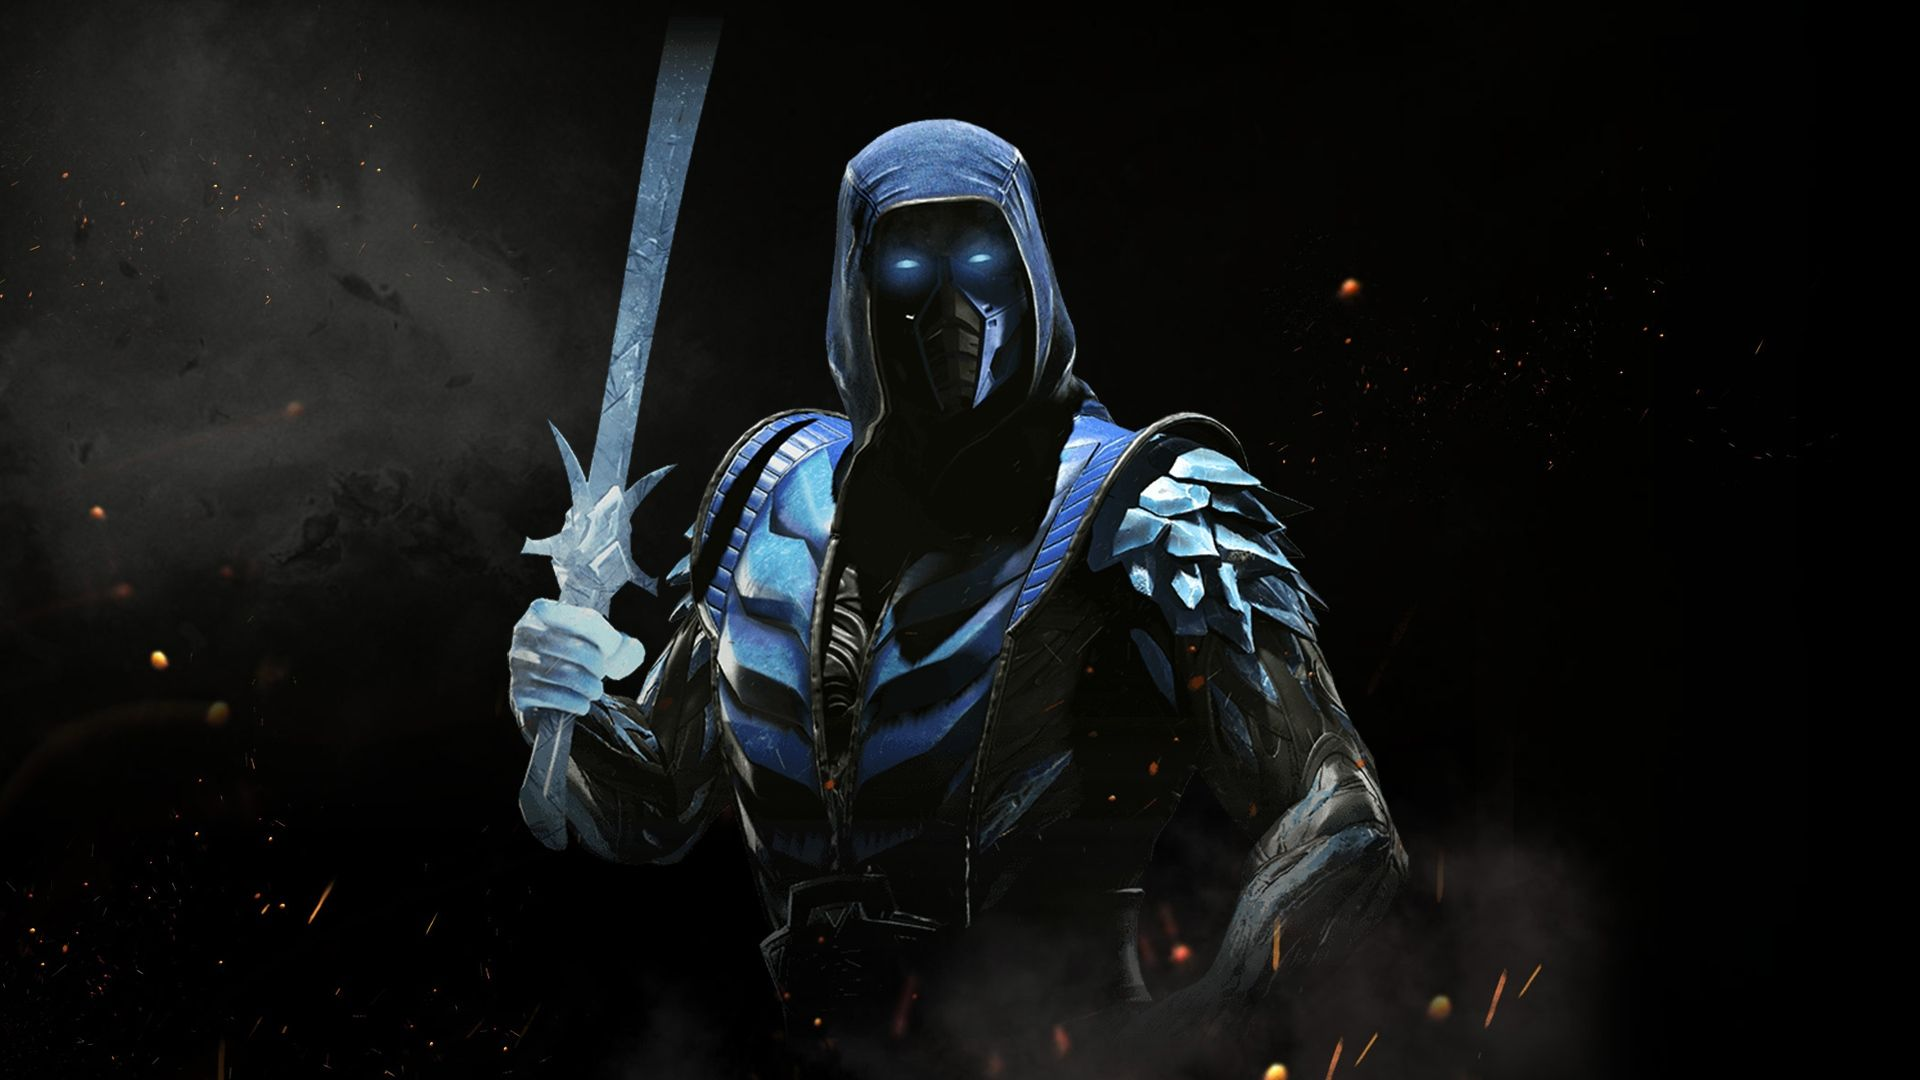 Cool Sub Zero Injustice 2 Game 1920x1080 With Images Injustice